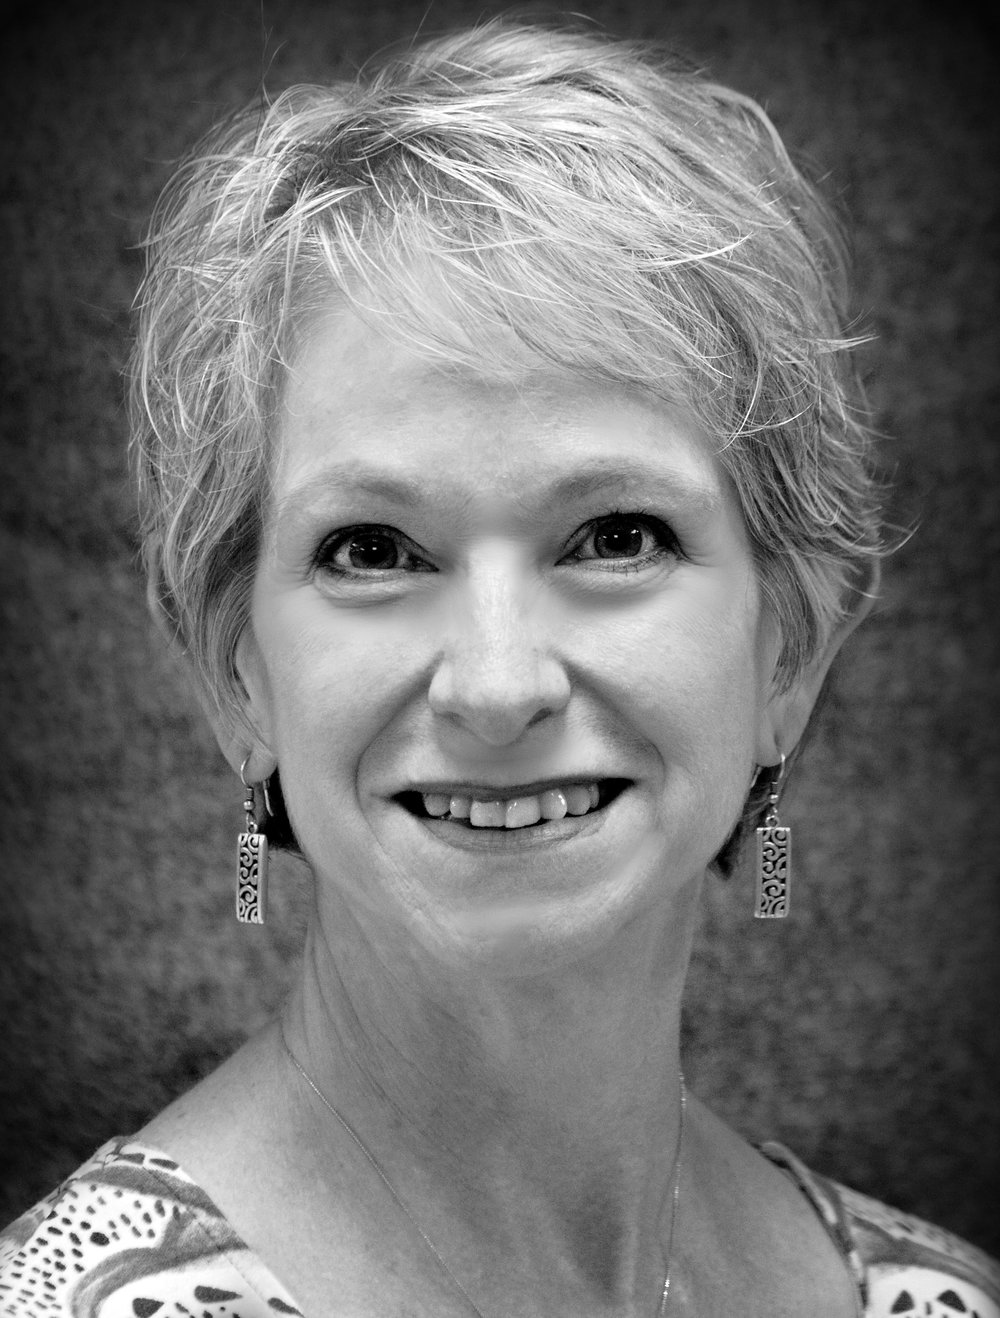 "Aunt Ev         //  Dotty Miller   With us for the first time, Dotty Miller (Aunt Ev) recently portrayed Amelia Tilford in First Presbyterian Theater's production of ""The Children's Hour"" and Witness #1 in Fort Wayne Youtheatre's ""Remembering Anne"".  She is a fixture in the local theatre scene on-stage and behind the scenes for most of the Fort Wayne theater organizations in addition to singing in various churches.  She is also a volunteer with the Miss America Organization and judges scholarship pageants.   Dotty's full time job as Director of Human Resources for DeKalb County Government sometimes requires her to be an actress as well.  Many thanks to her family and friends who support her acting 'habit'."